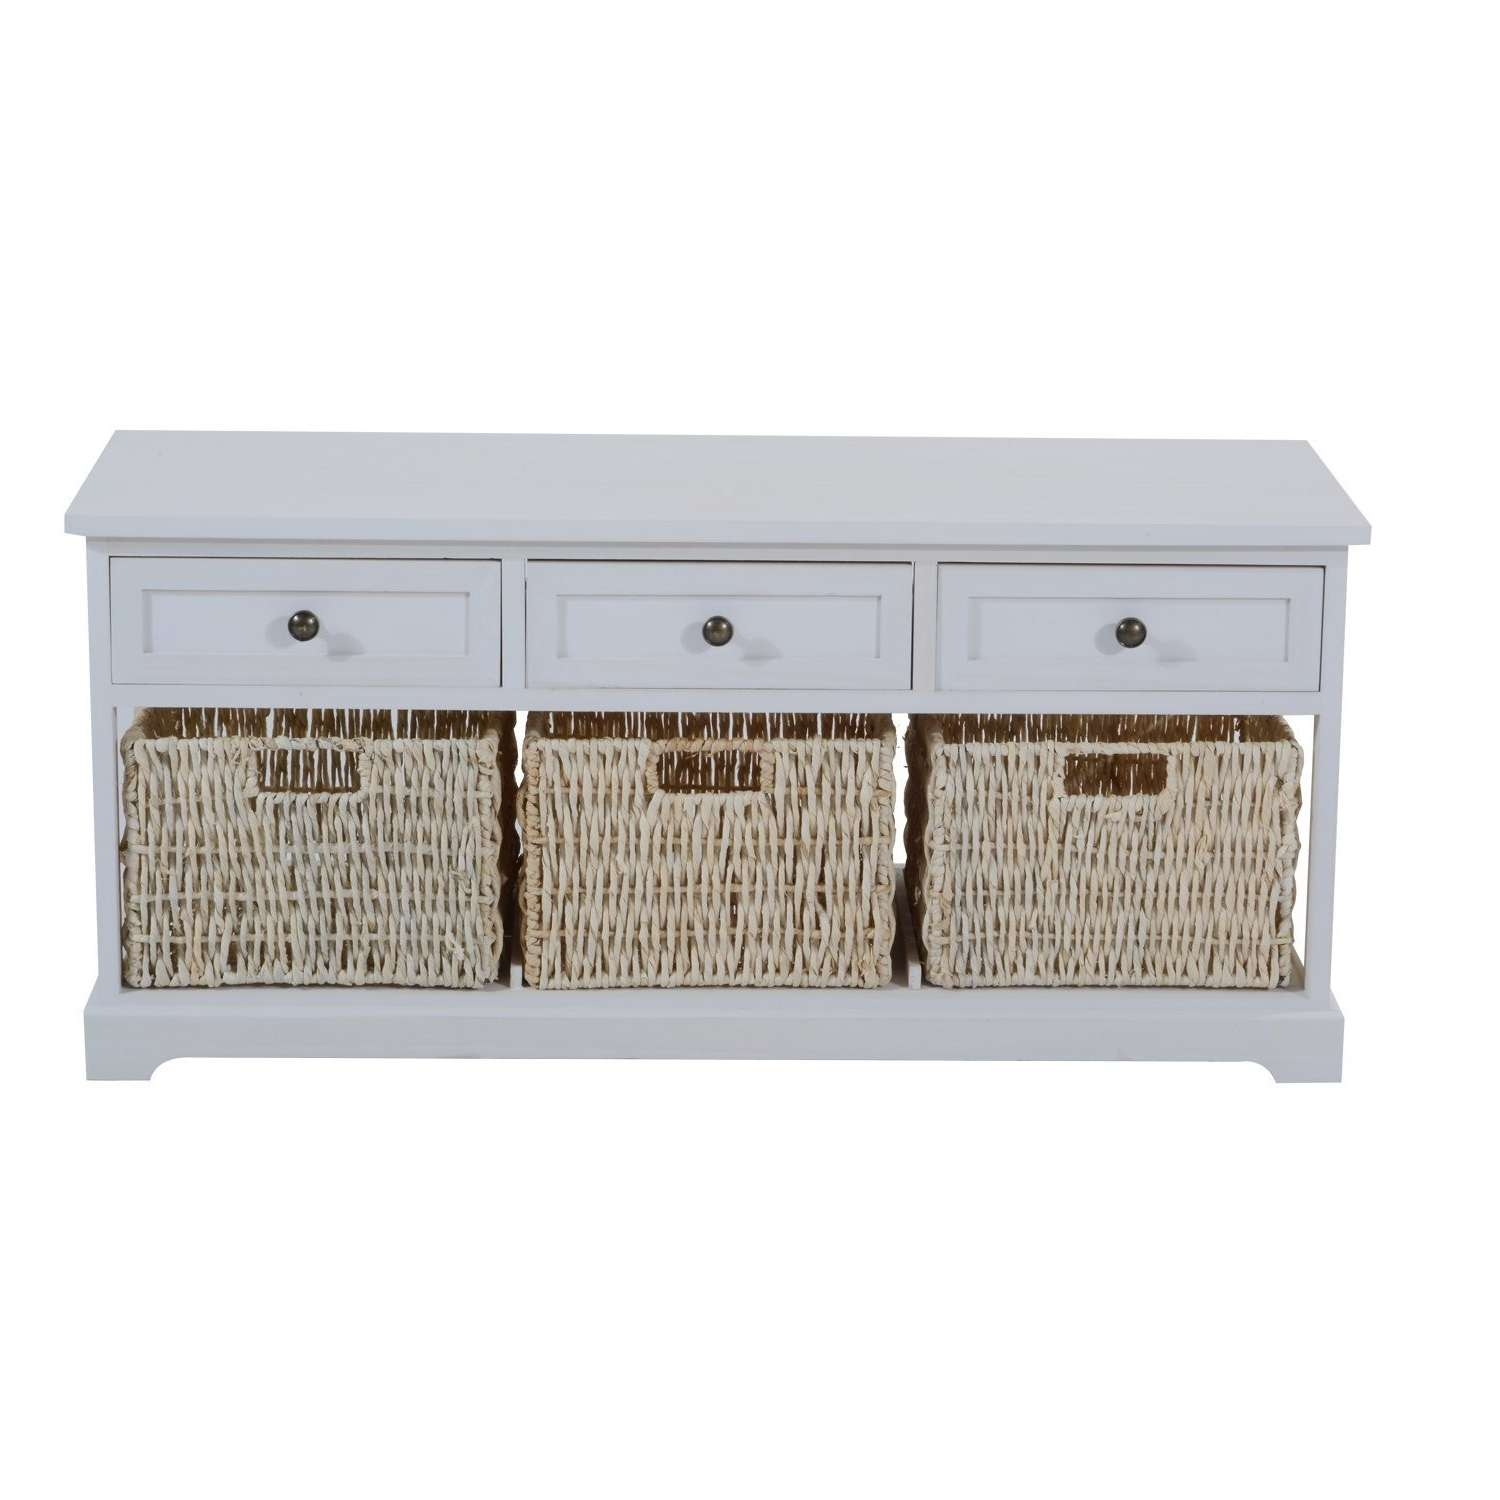 Wooden Coffee Table With Seagrass Wicker Storage Baskets – Ideal With Regard To Widely Used White Coffee Tables With Baskets (View 20 of 20)